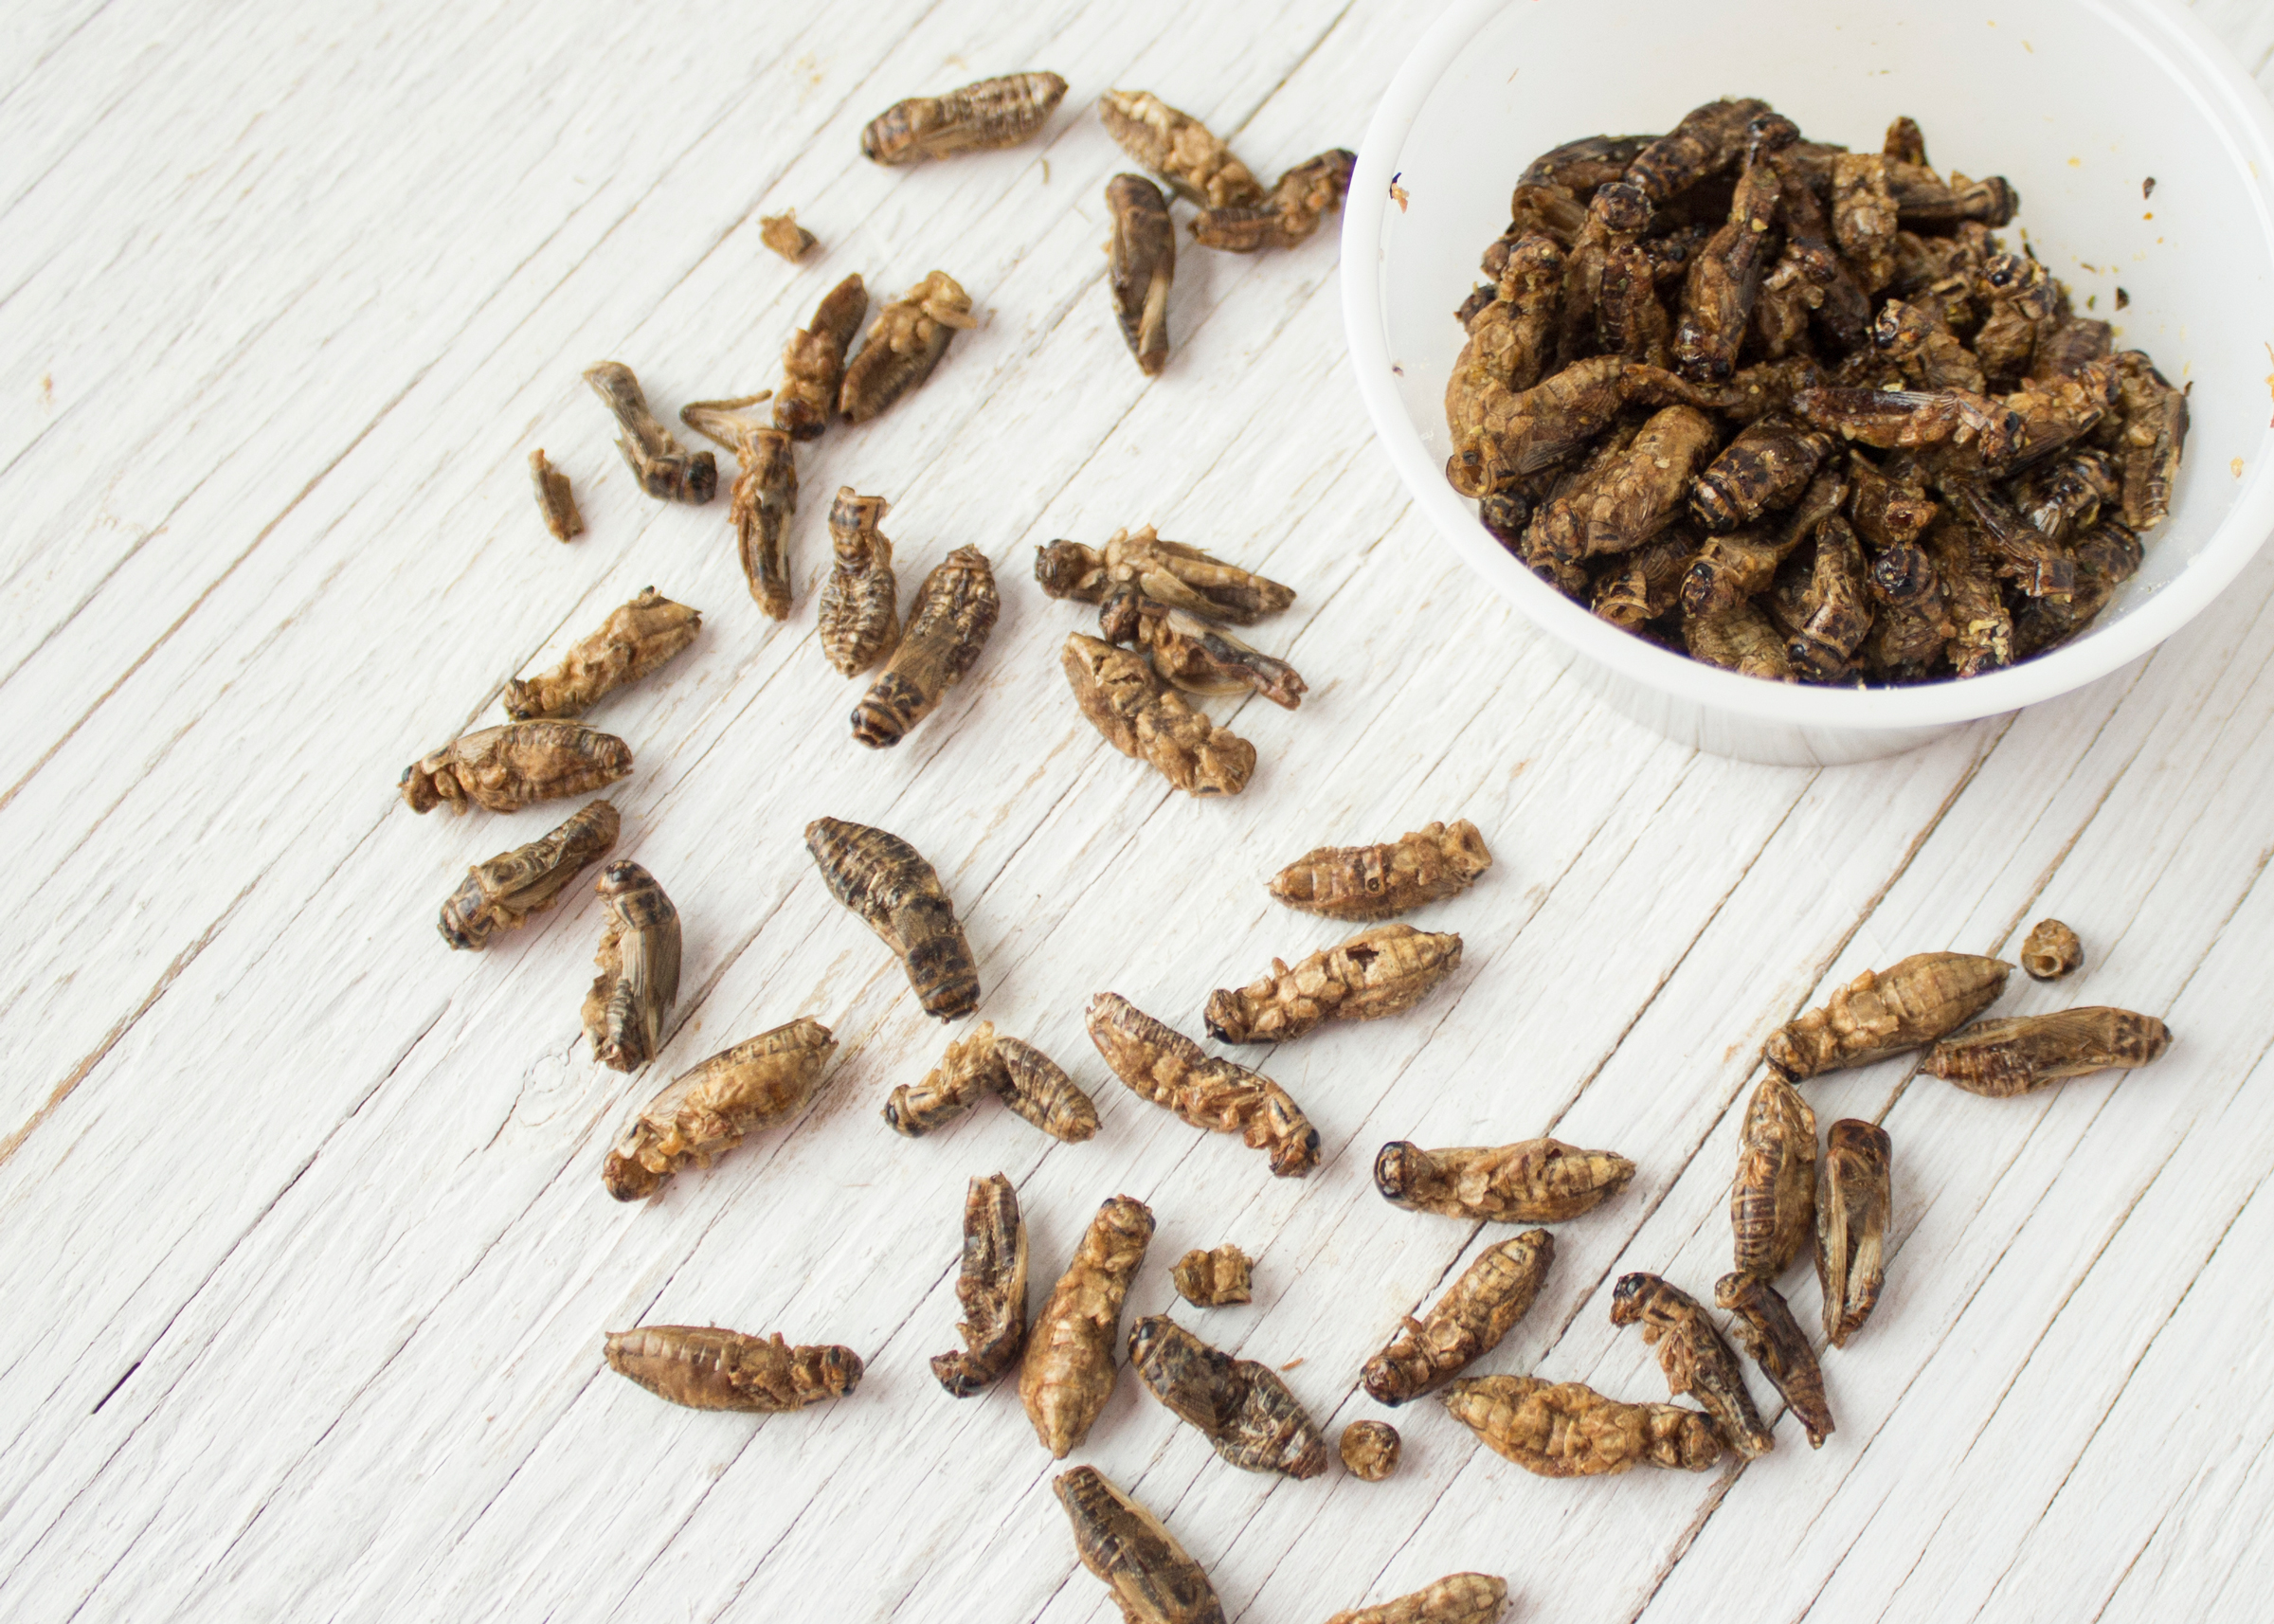 Fifth Third Ballpark introduces roasted crickets to the menu.